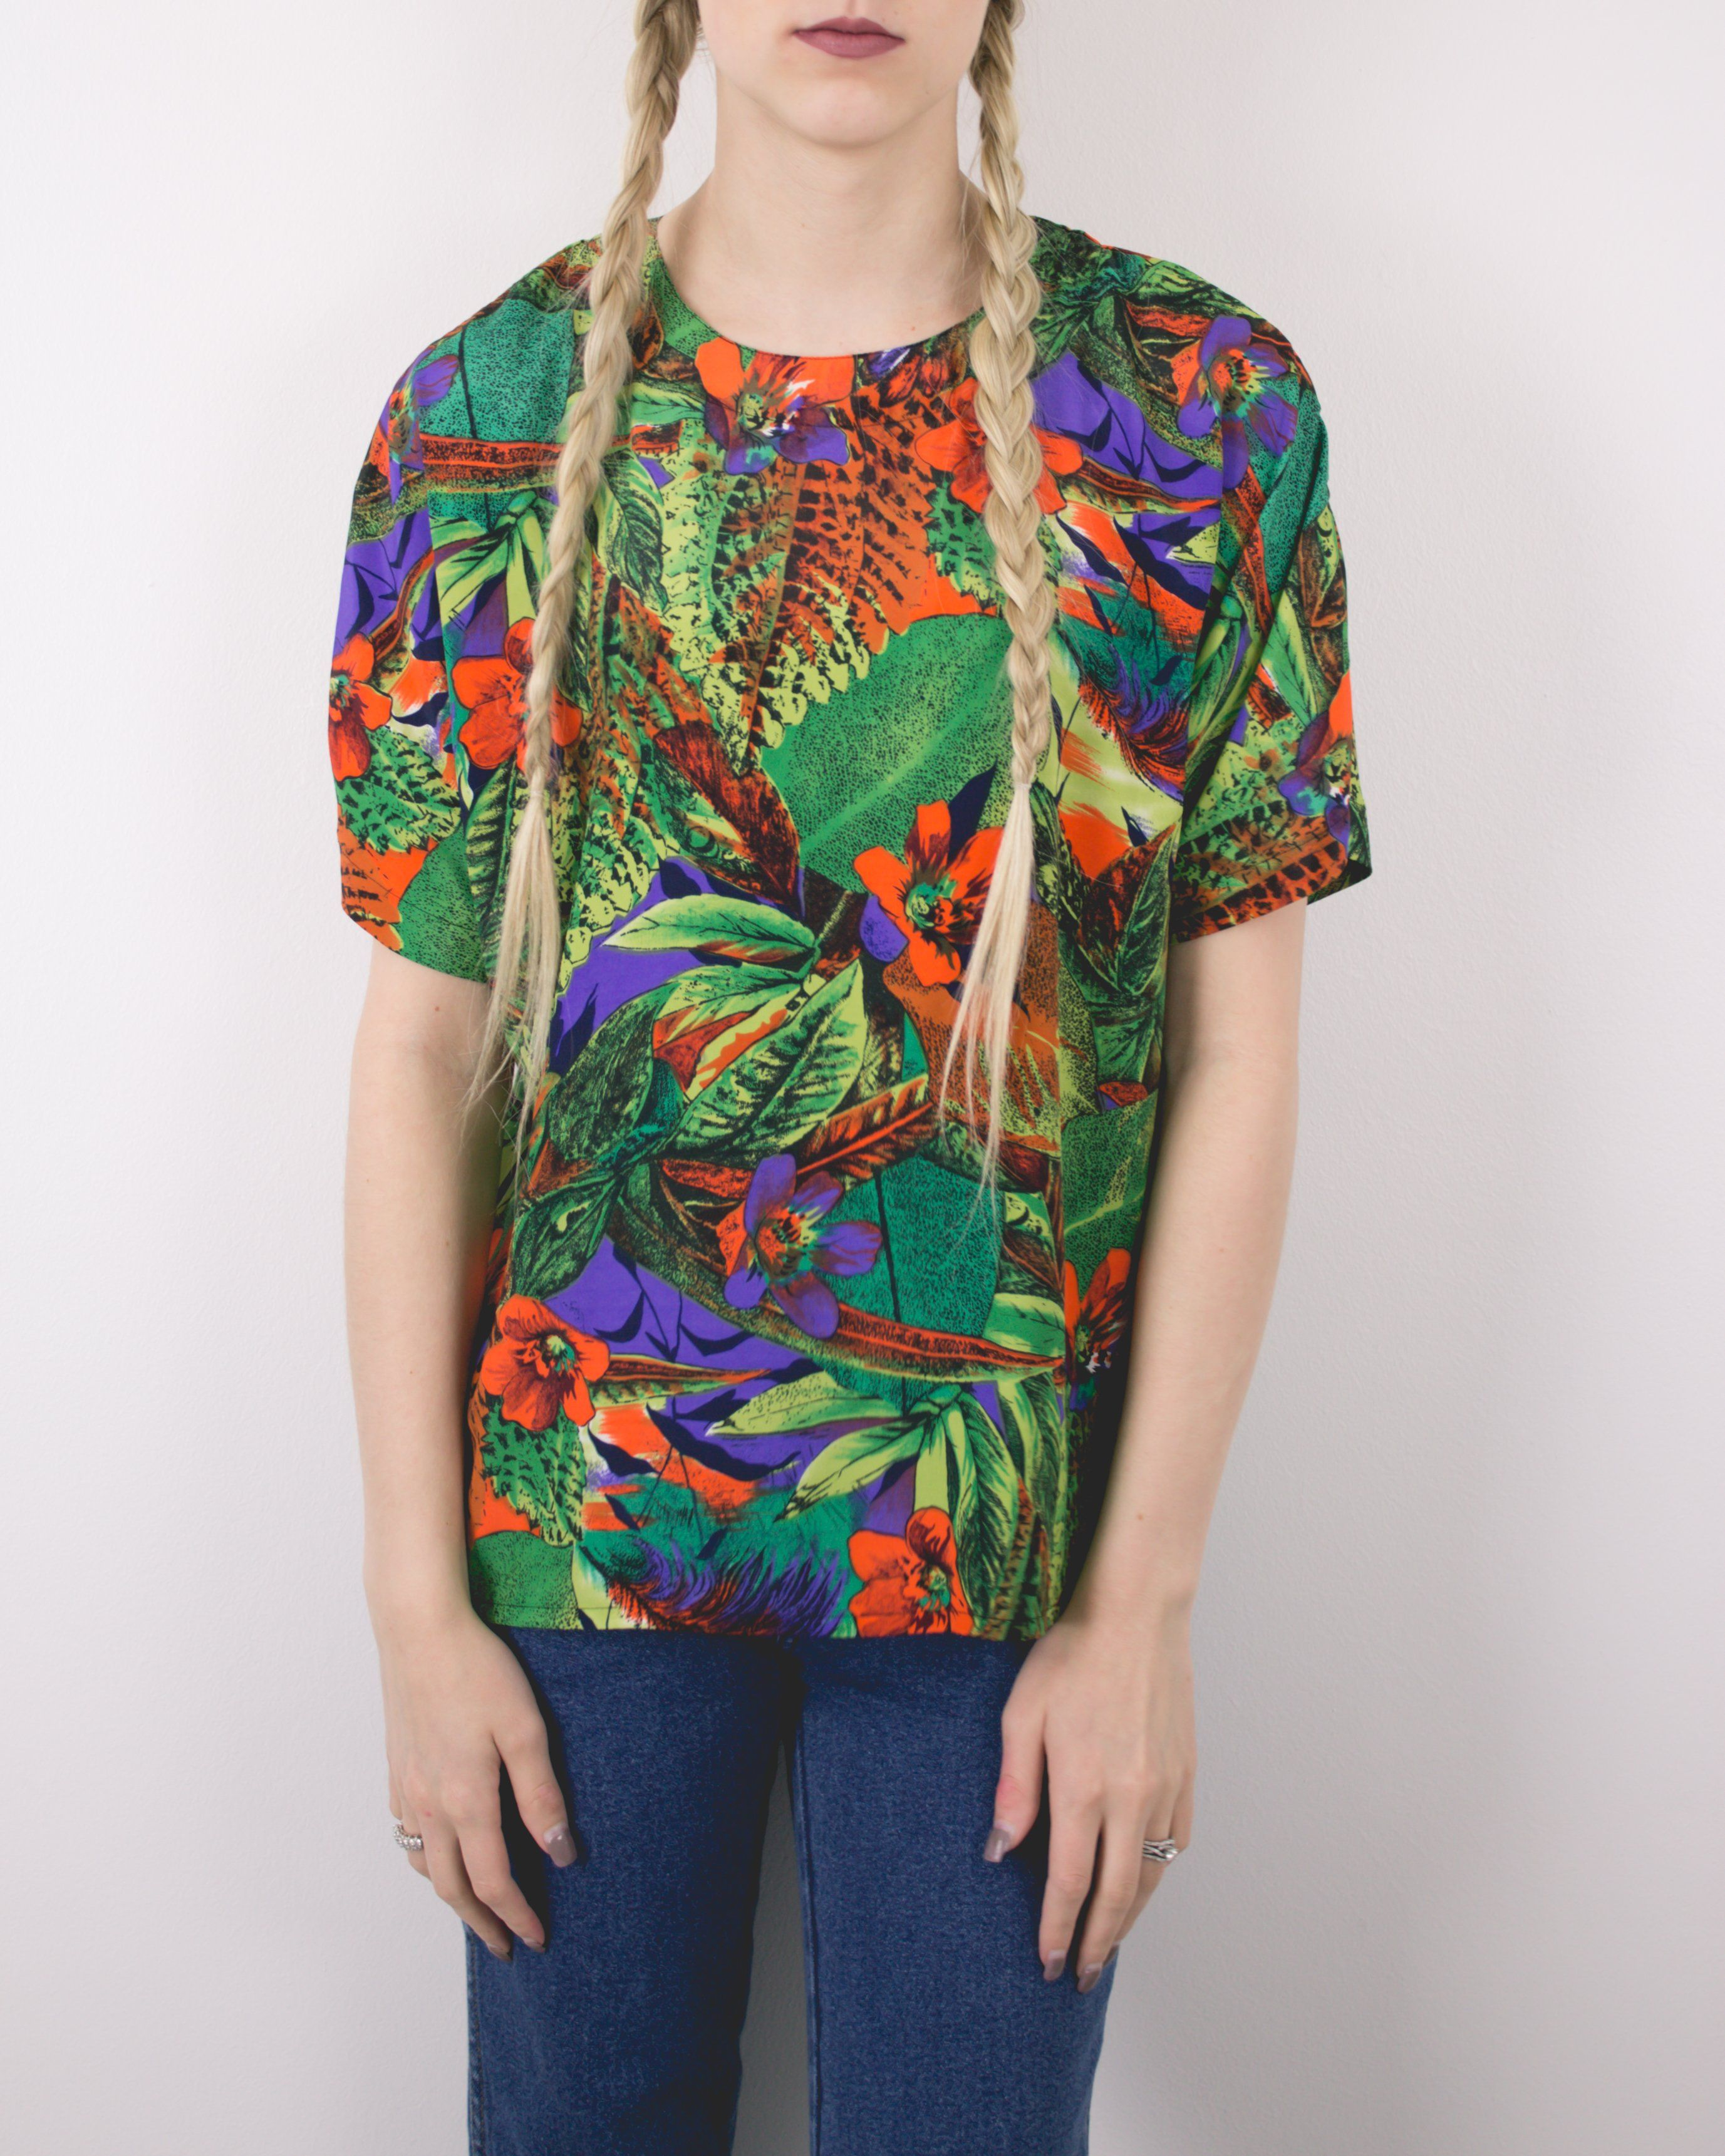 97923a2c Vintage 80s Floral Tropical Hawaiian Blouse | Products | Blouse ...